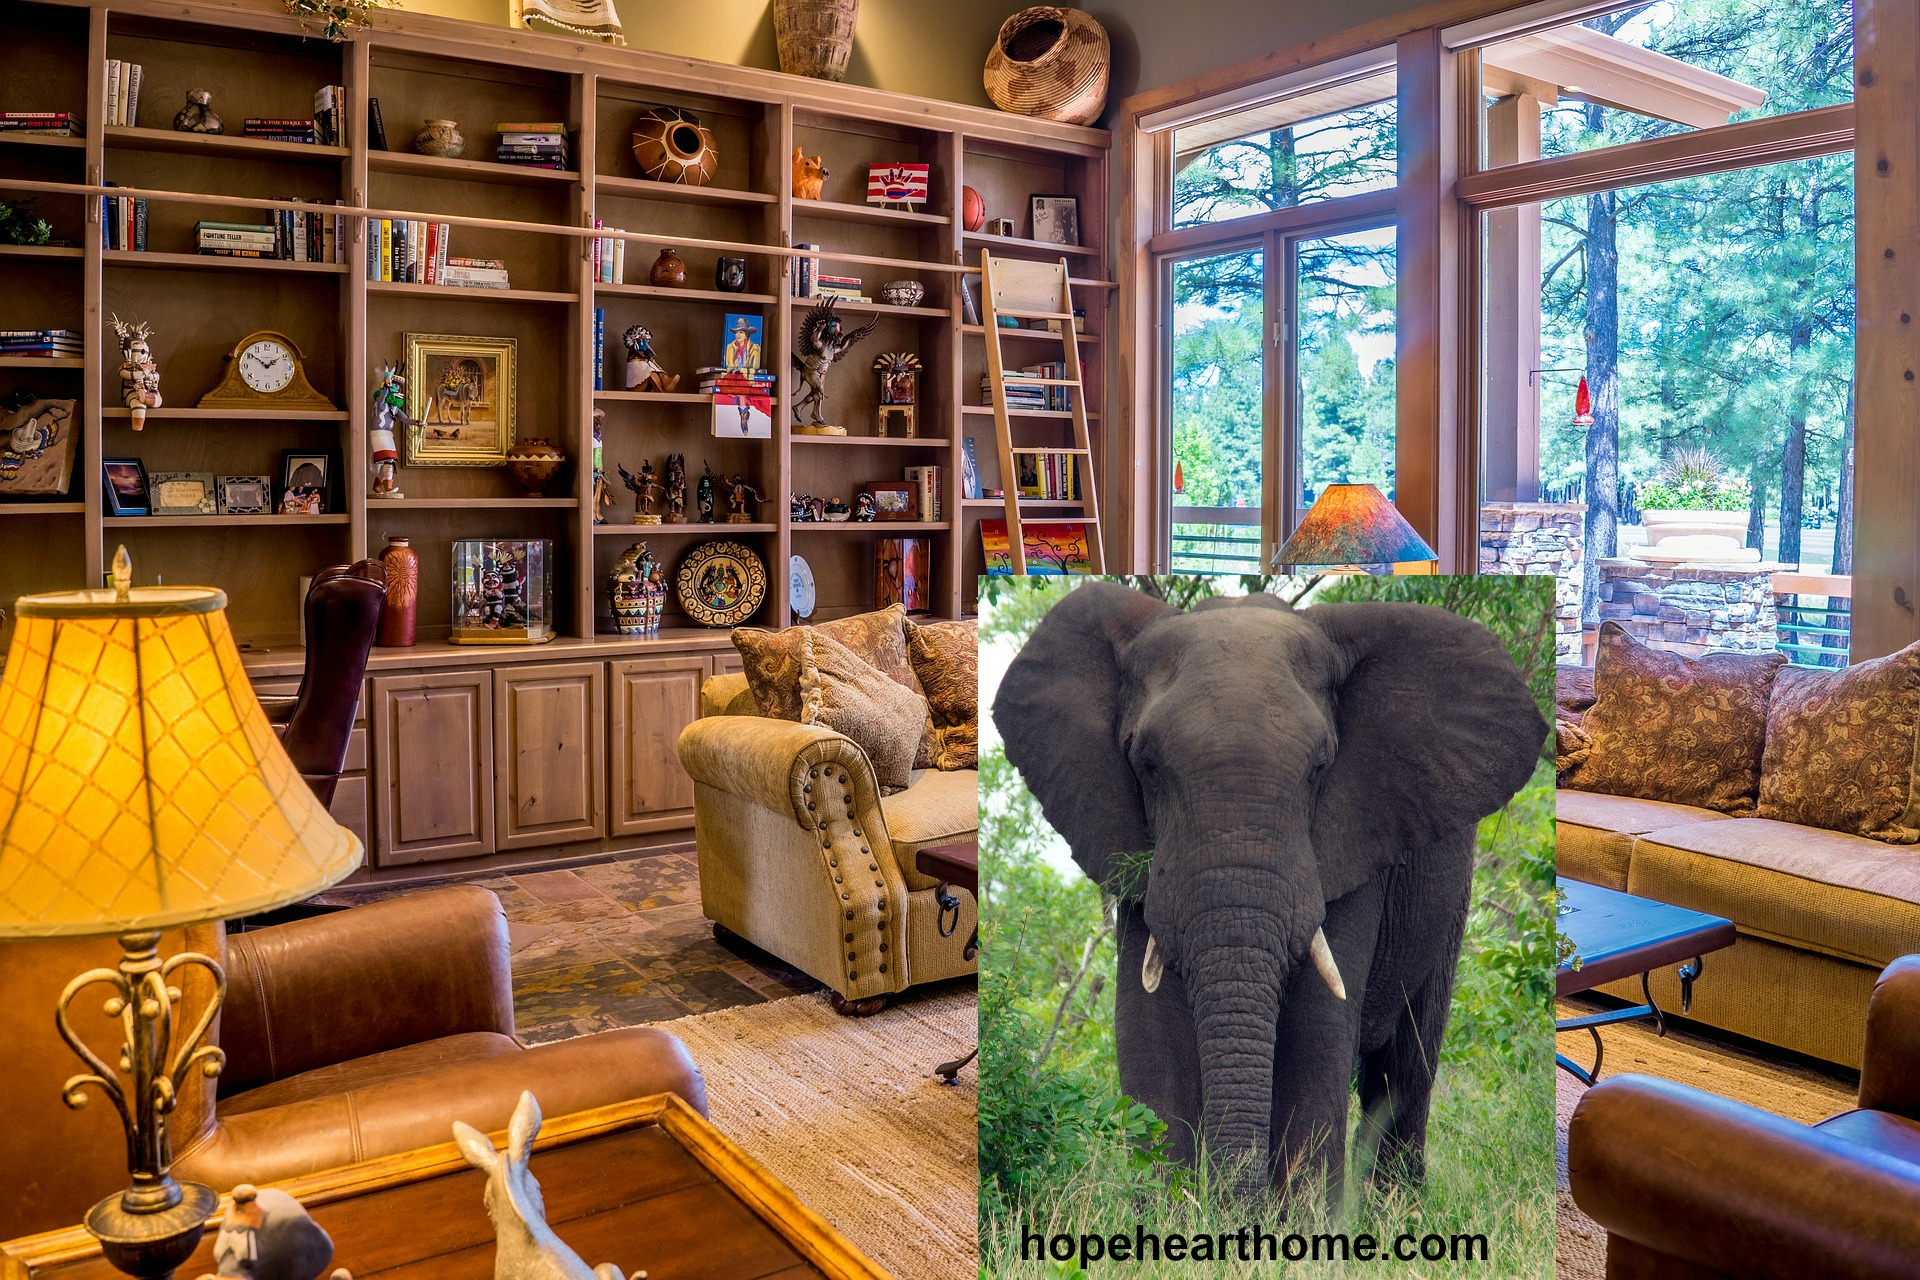 The elephant in the room encouragement hope women - The elephant in the living room full movie ...